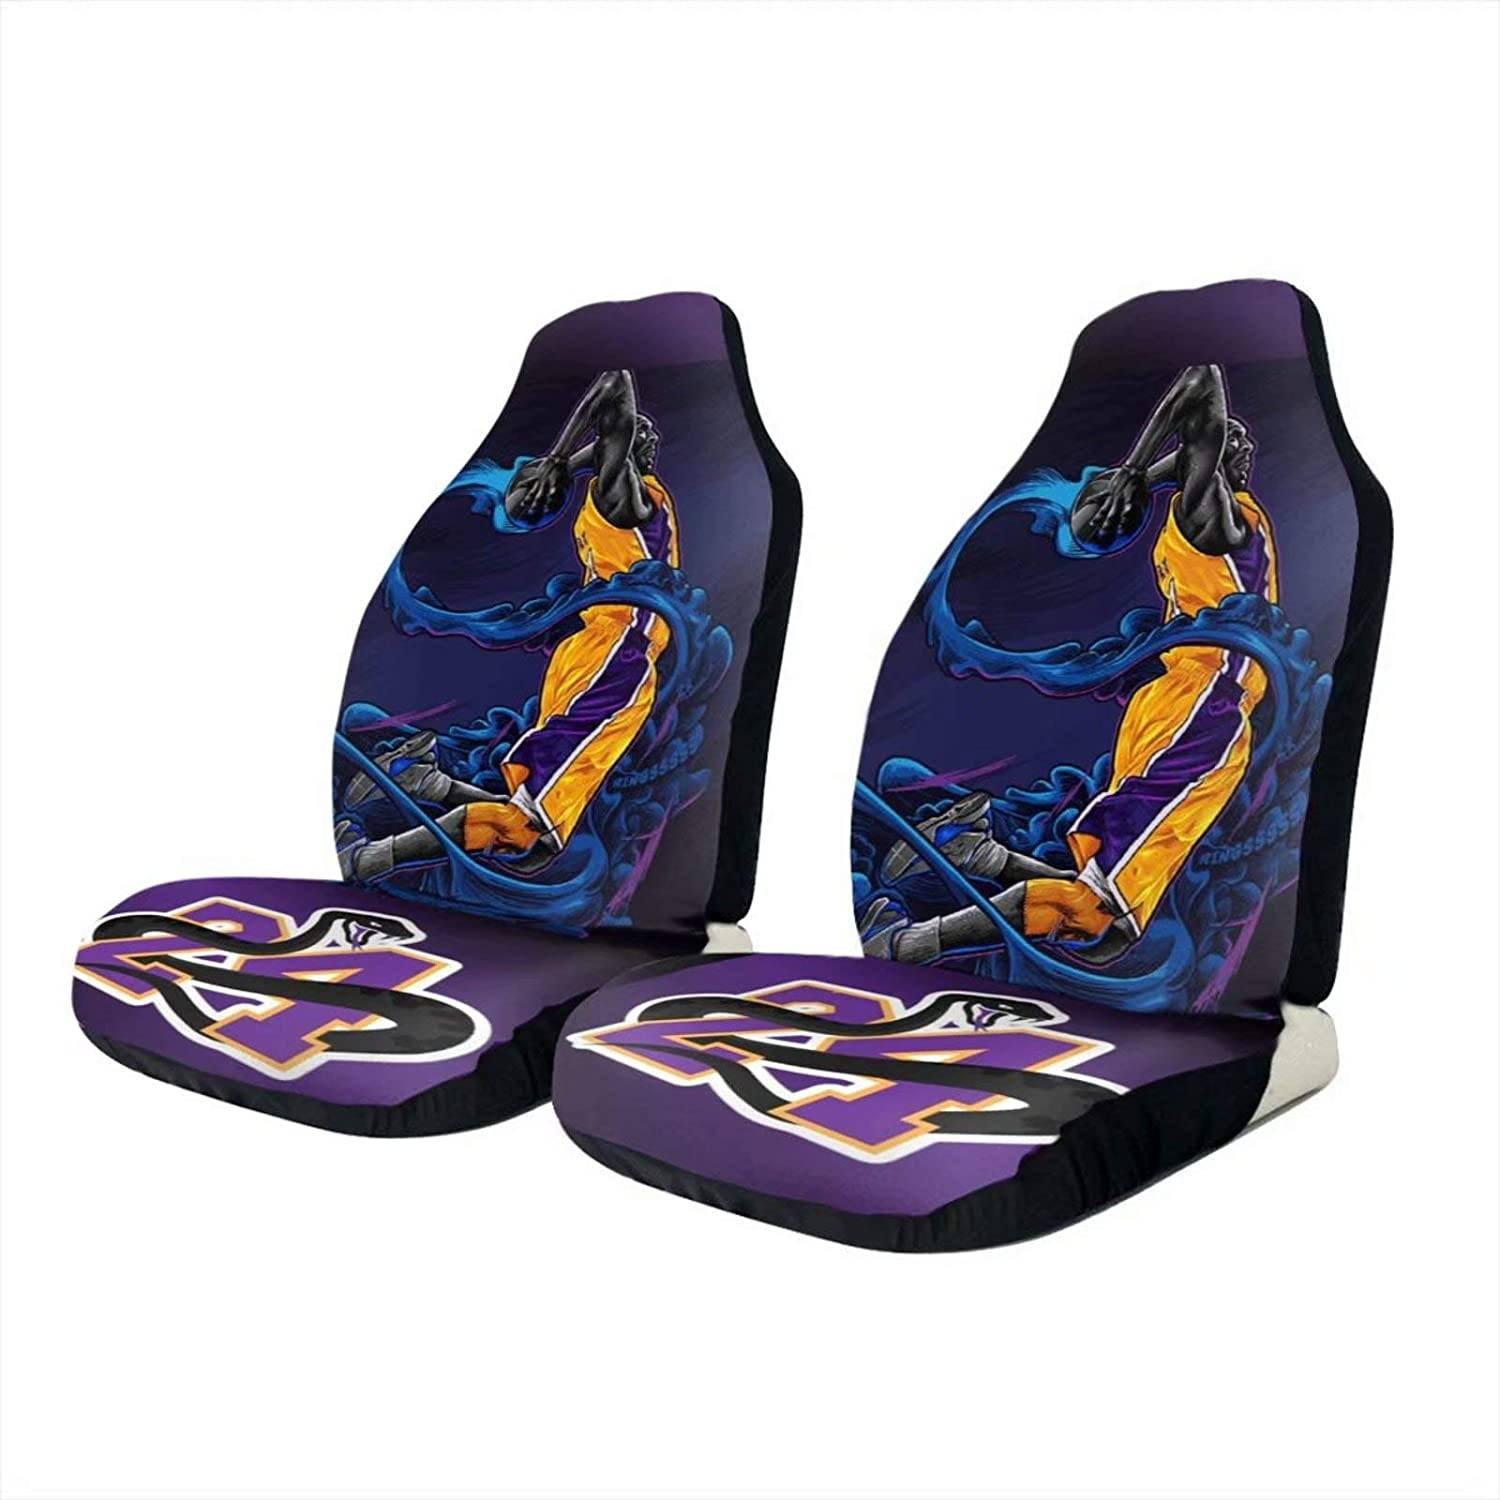 2PCS Los Angeles Basketball Car Seat Cover Player Number 24 Seats Covers Black Mamba Automotive Front Seat Cover Purple Auto Backseat Storage Pocket Interior Car Accessories Fit Car Truck Van SUV